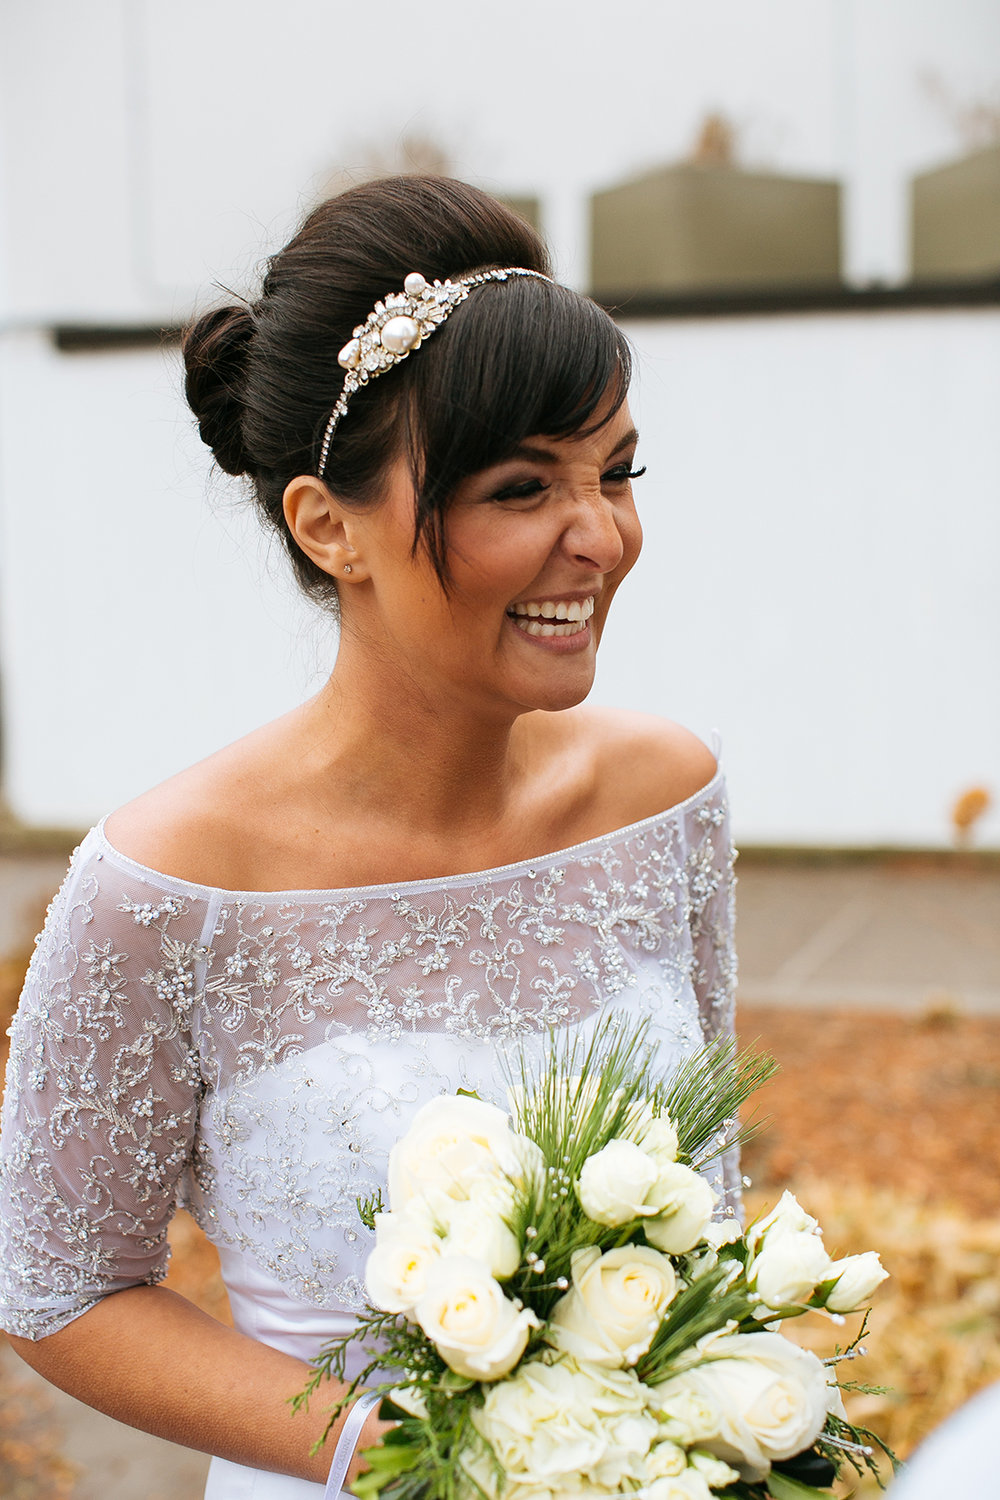 Alyssa Lee Photography | bride laughing with bangs and a bun, off shoulder 3/4 sleeve dress, white bouquet | tan bride | Sixpence Standard Blog | Minnesota wedding